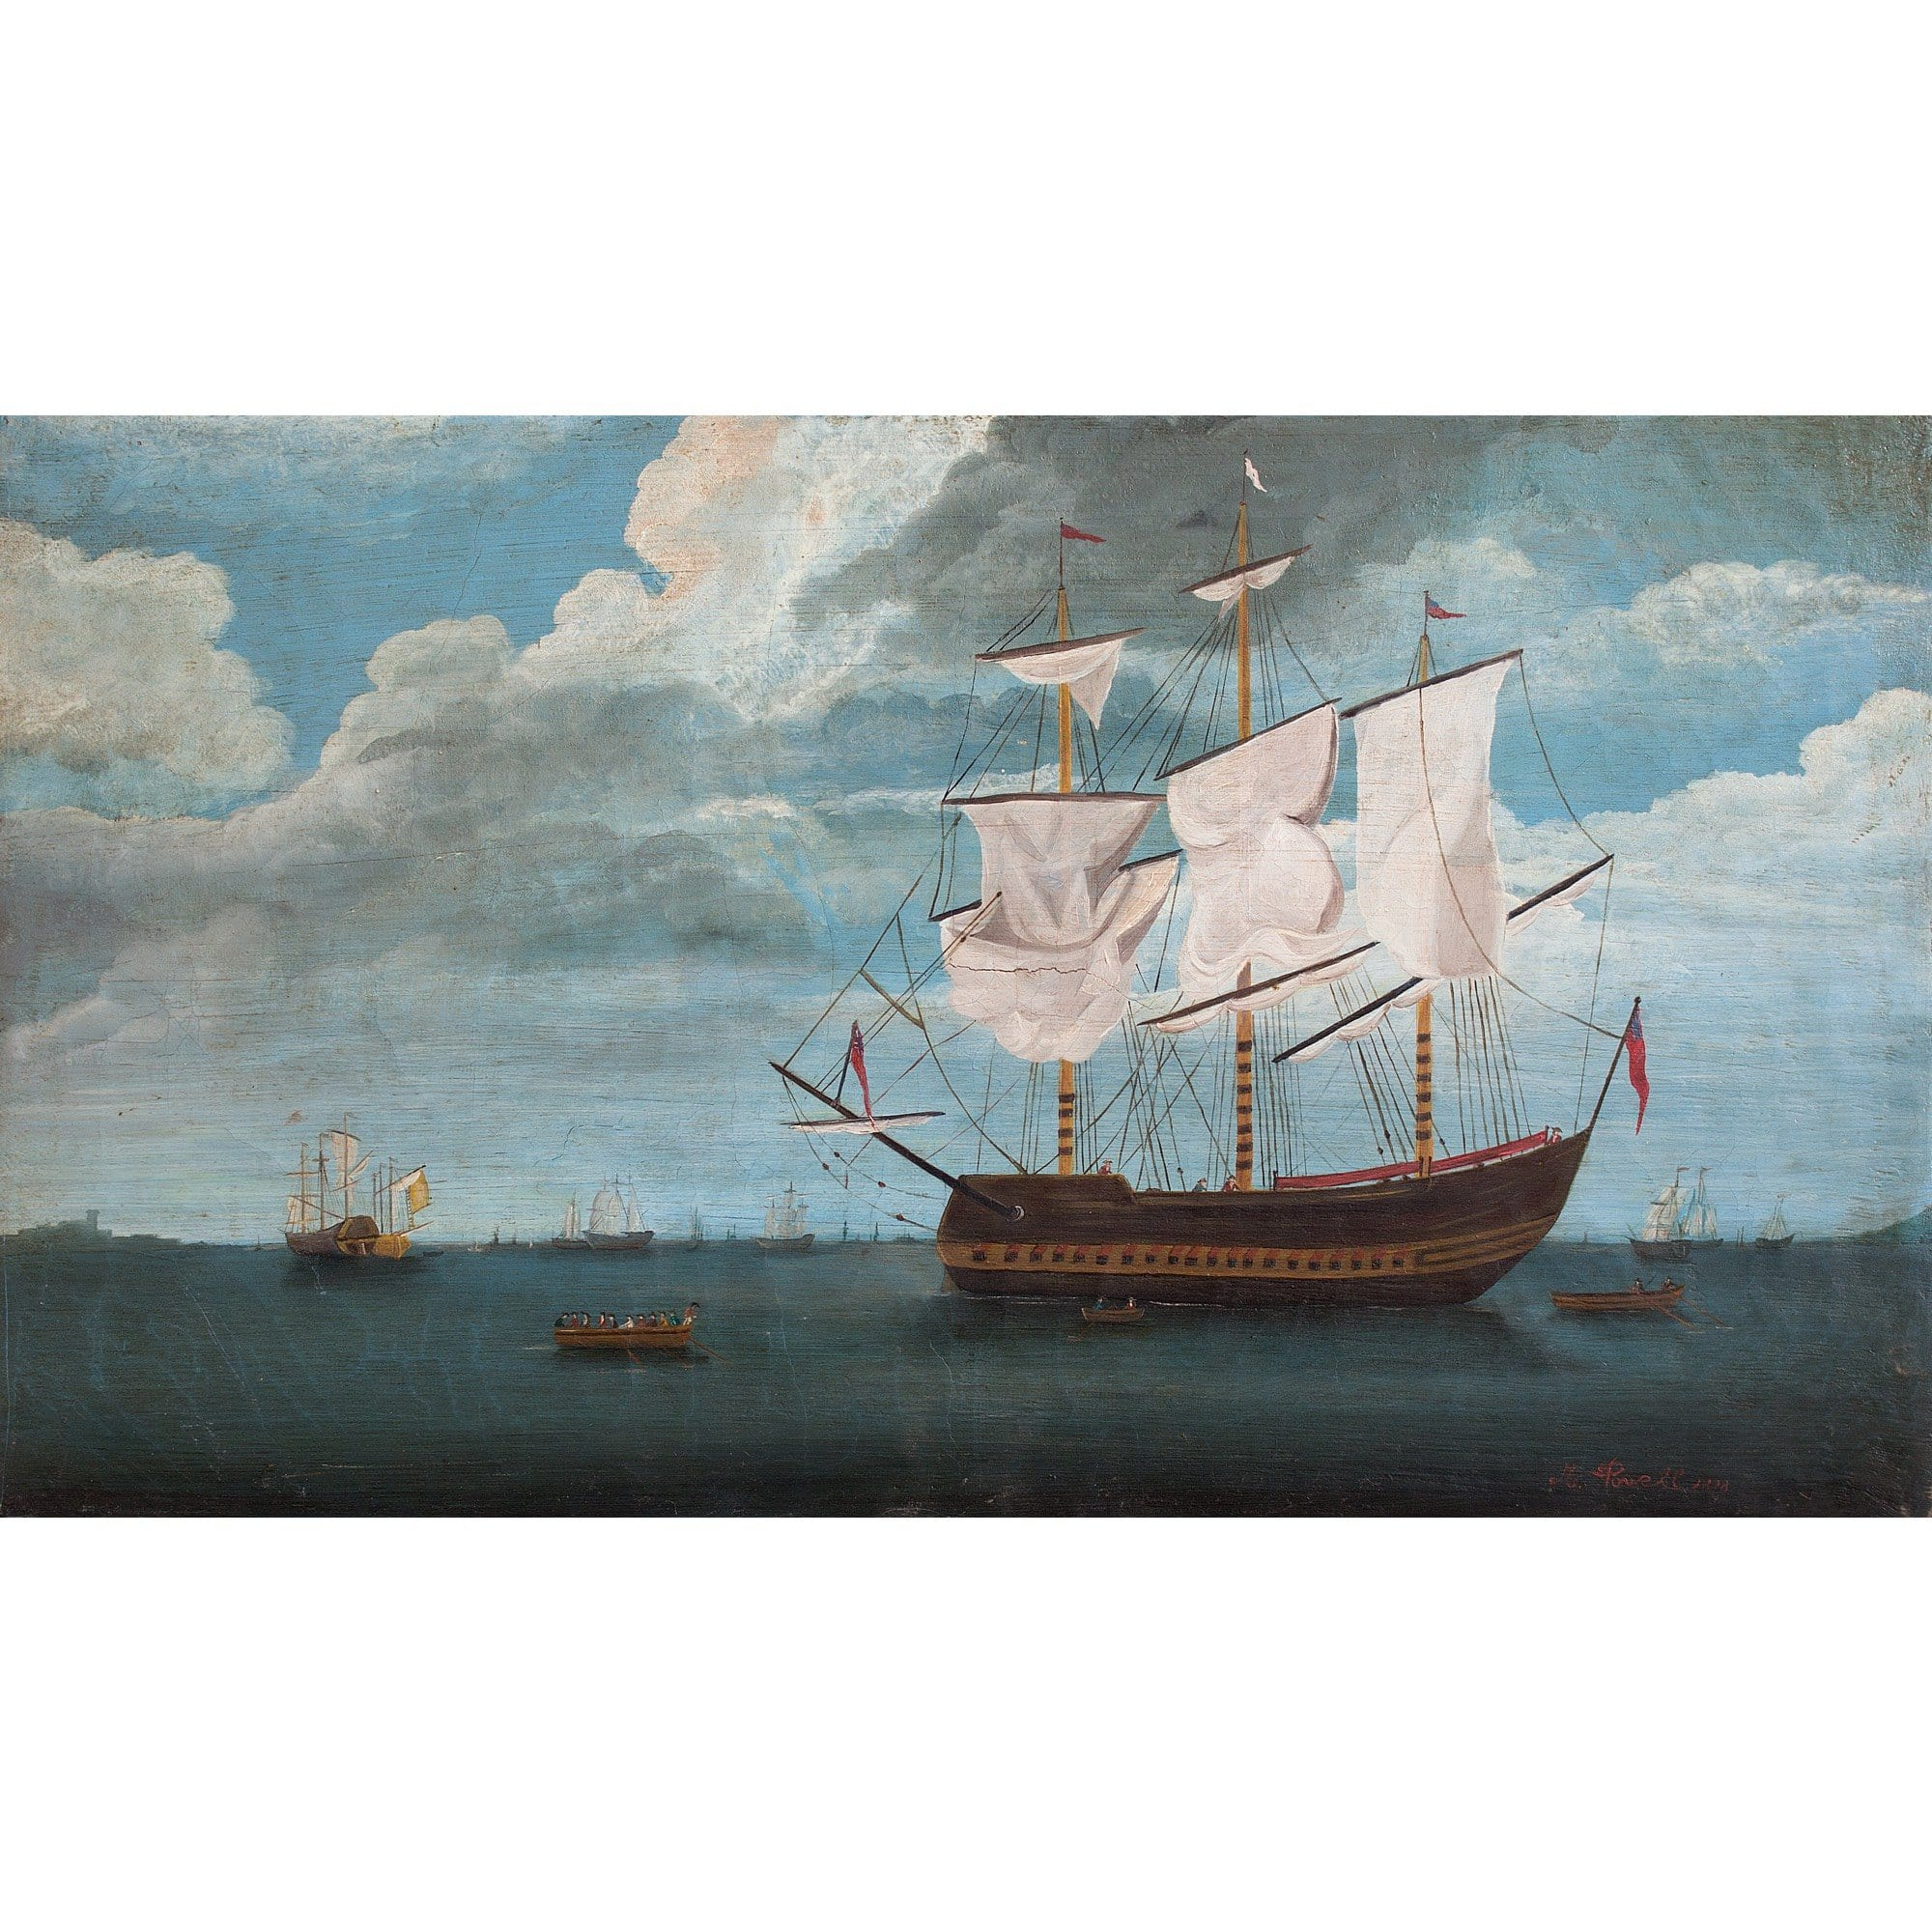 Provincial 19th-Century British Maritime Scene - Original Framed Painting - Antique Art - Brave Fine Art